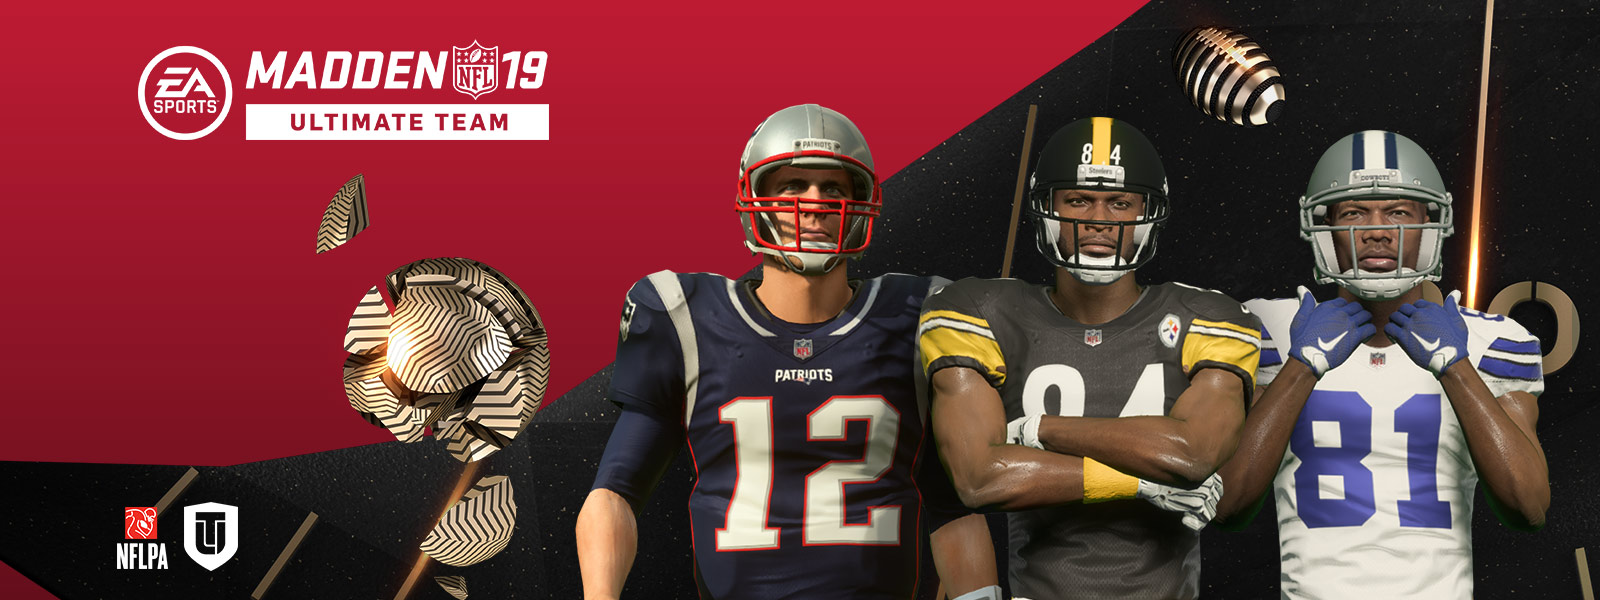 Madden NFL 19 Ultimate Team, Front view of Tom Brady, Antonio Brown, and Terrell Owens